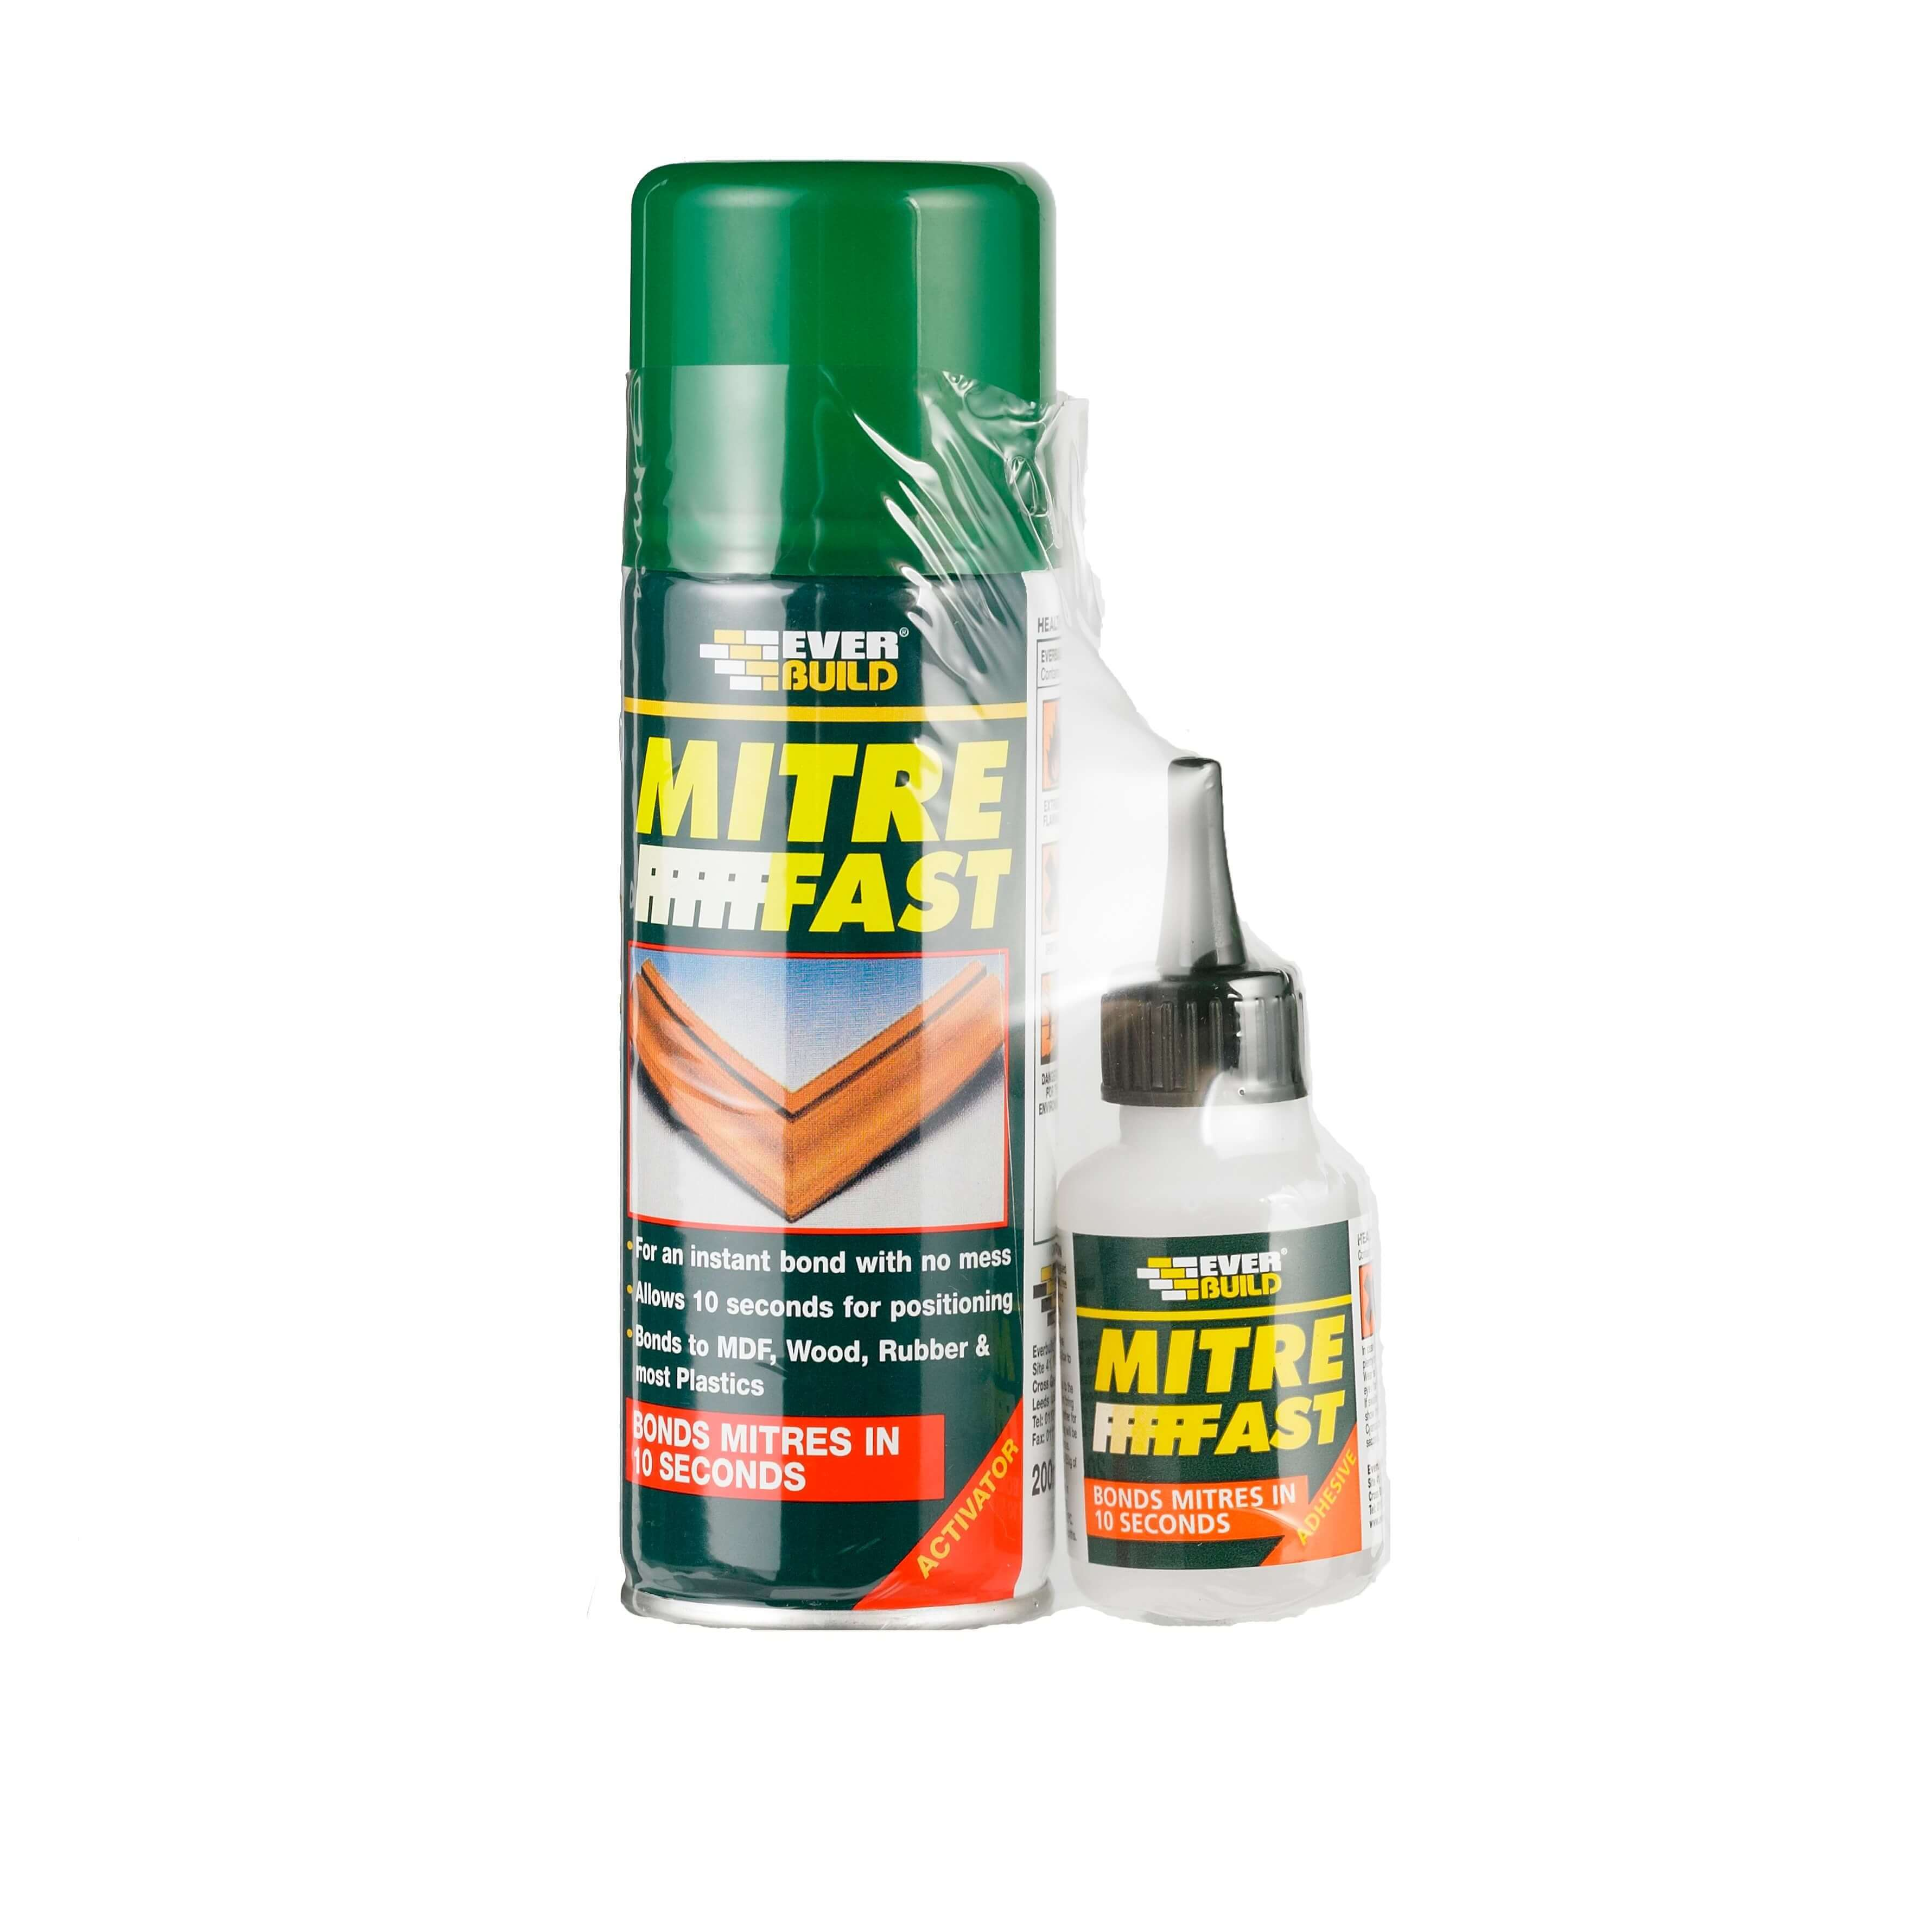 Everbuild Mitre Fast Bonding Kit - 200ml + 50g